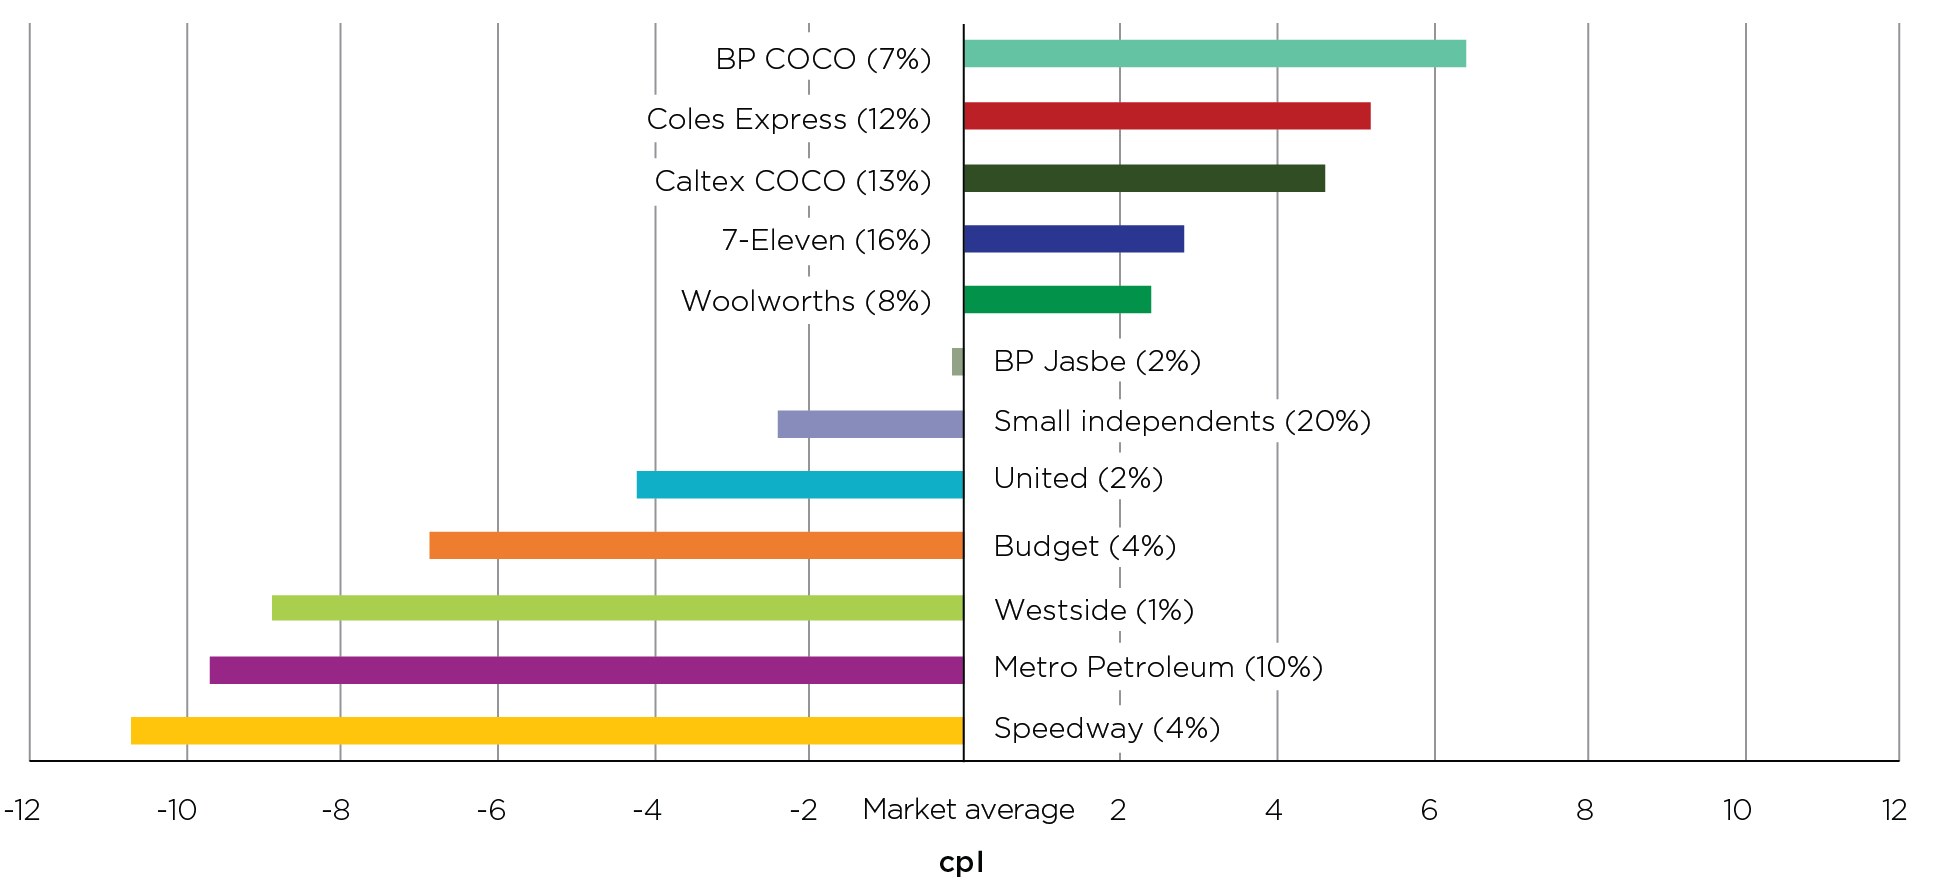 In 2020, Sydney motorists could have saved 17.1 cents per litre by buying petrol at the lowest-priced retailer, which was Speedway, rather than the highest-priced retailer, which was BP COCO.